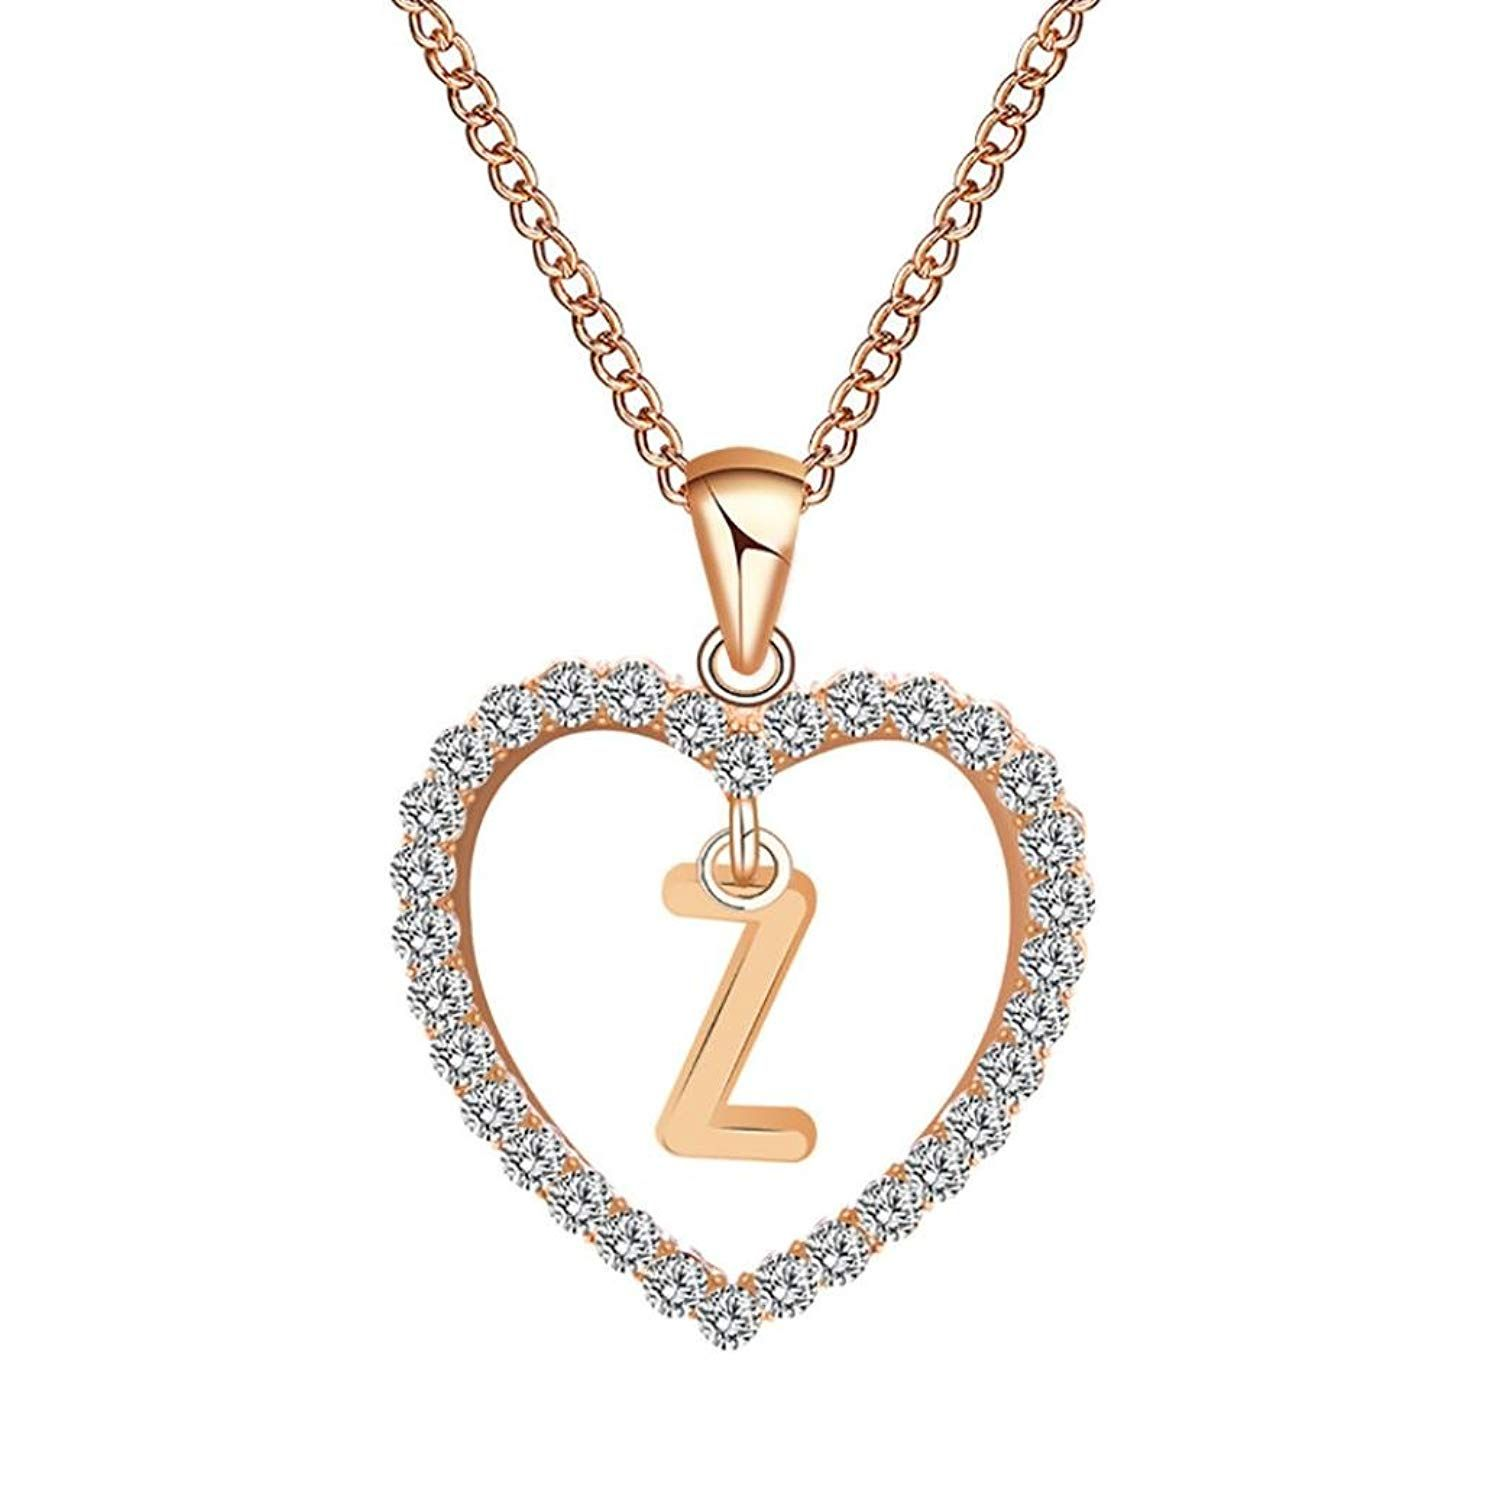 Aooaz Gold Plated Necklace Womens Girls Heart CZ Pendant Necklaces Anniversary